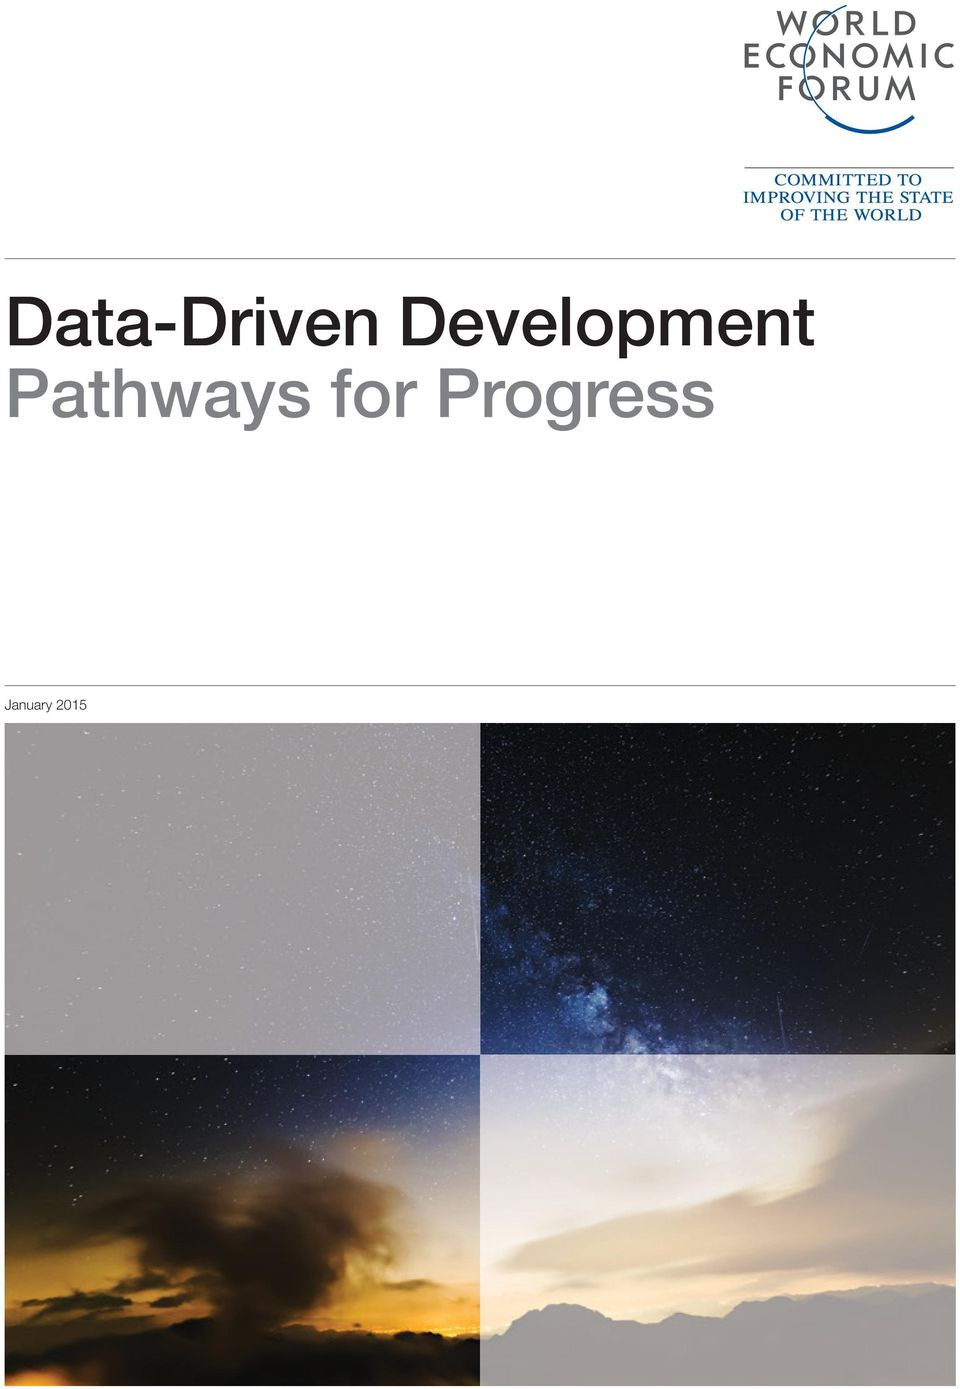 Pathways for